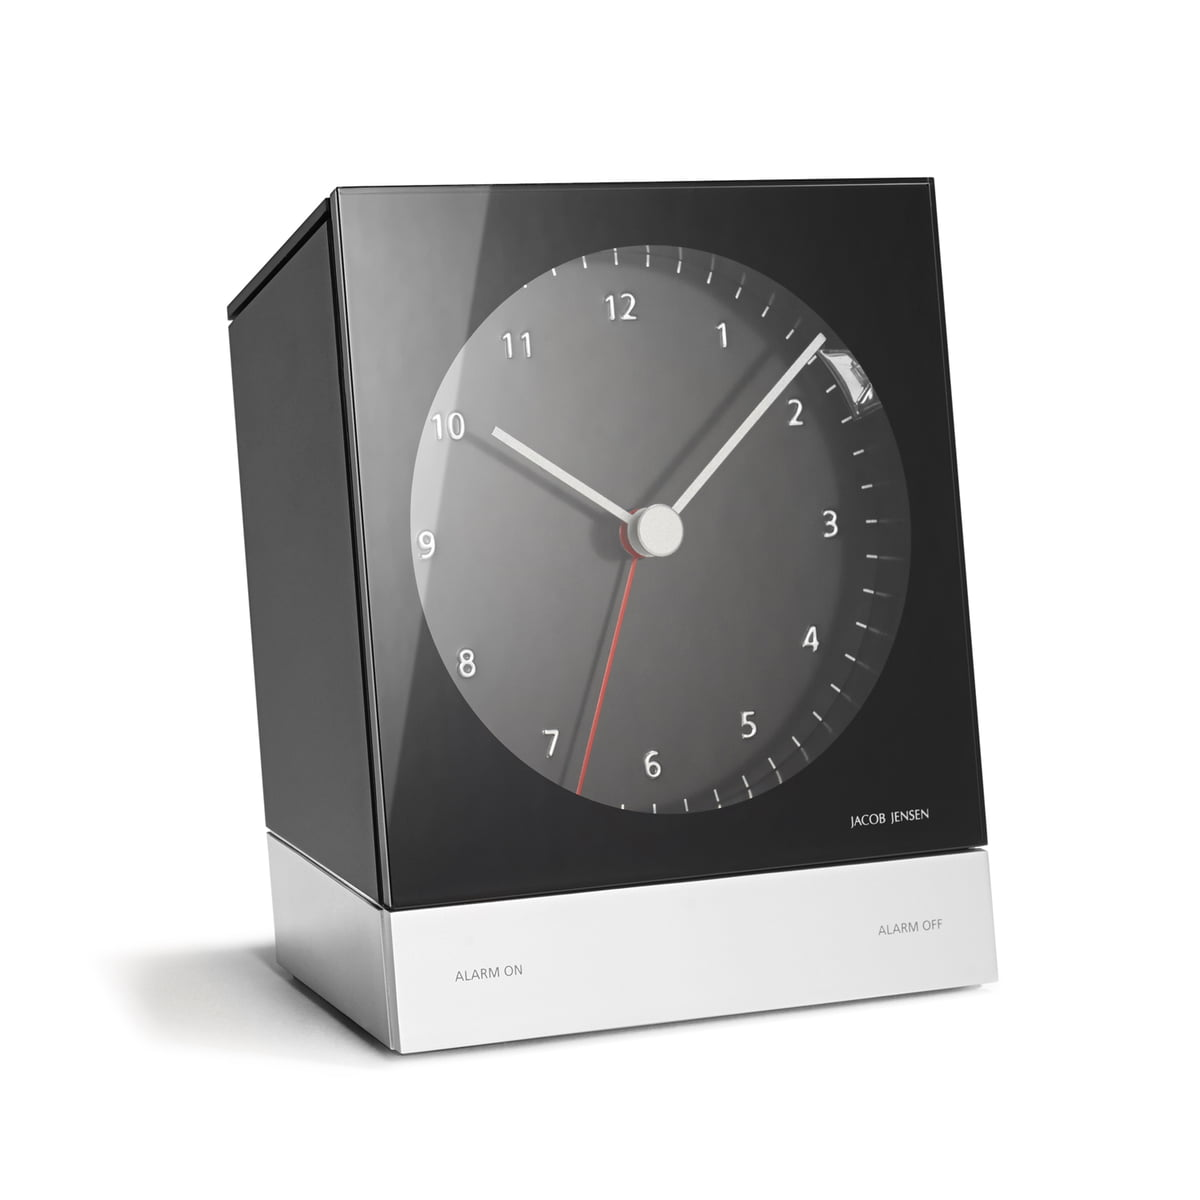 the jacob jensen alarm clock series quartz